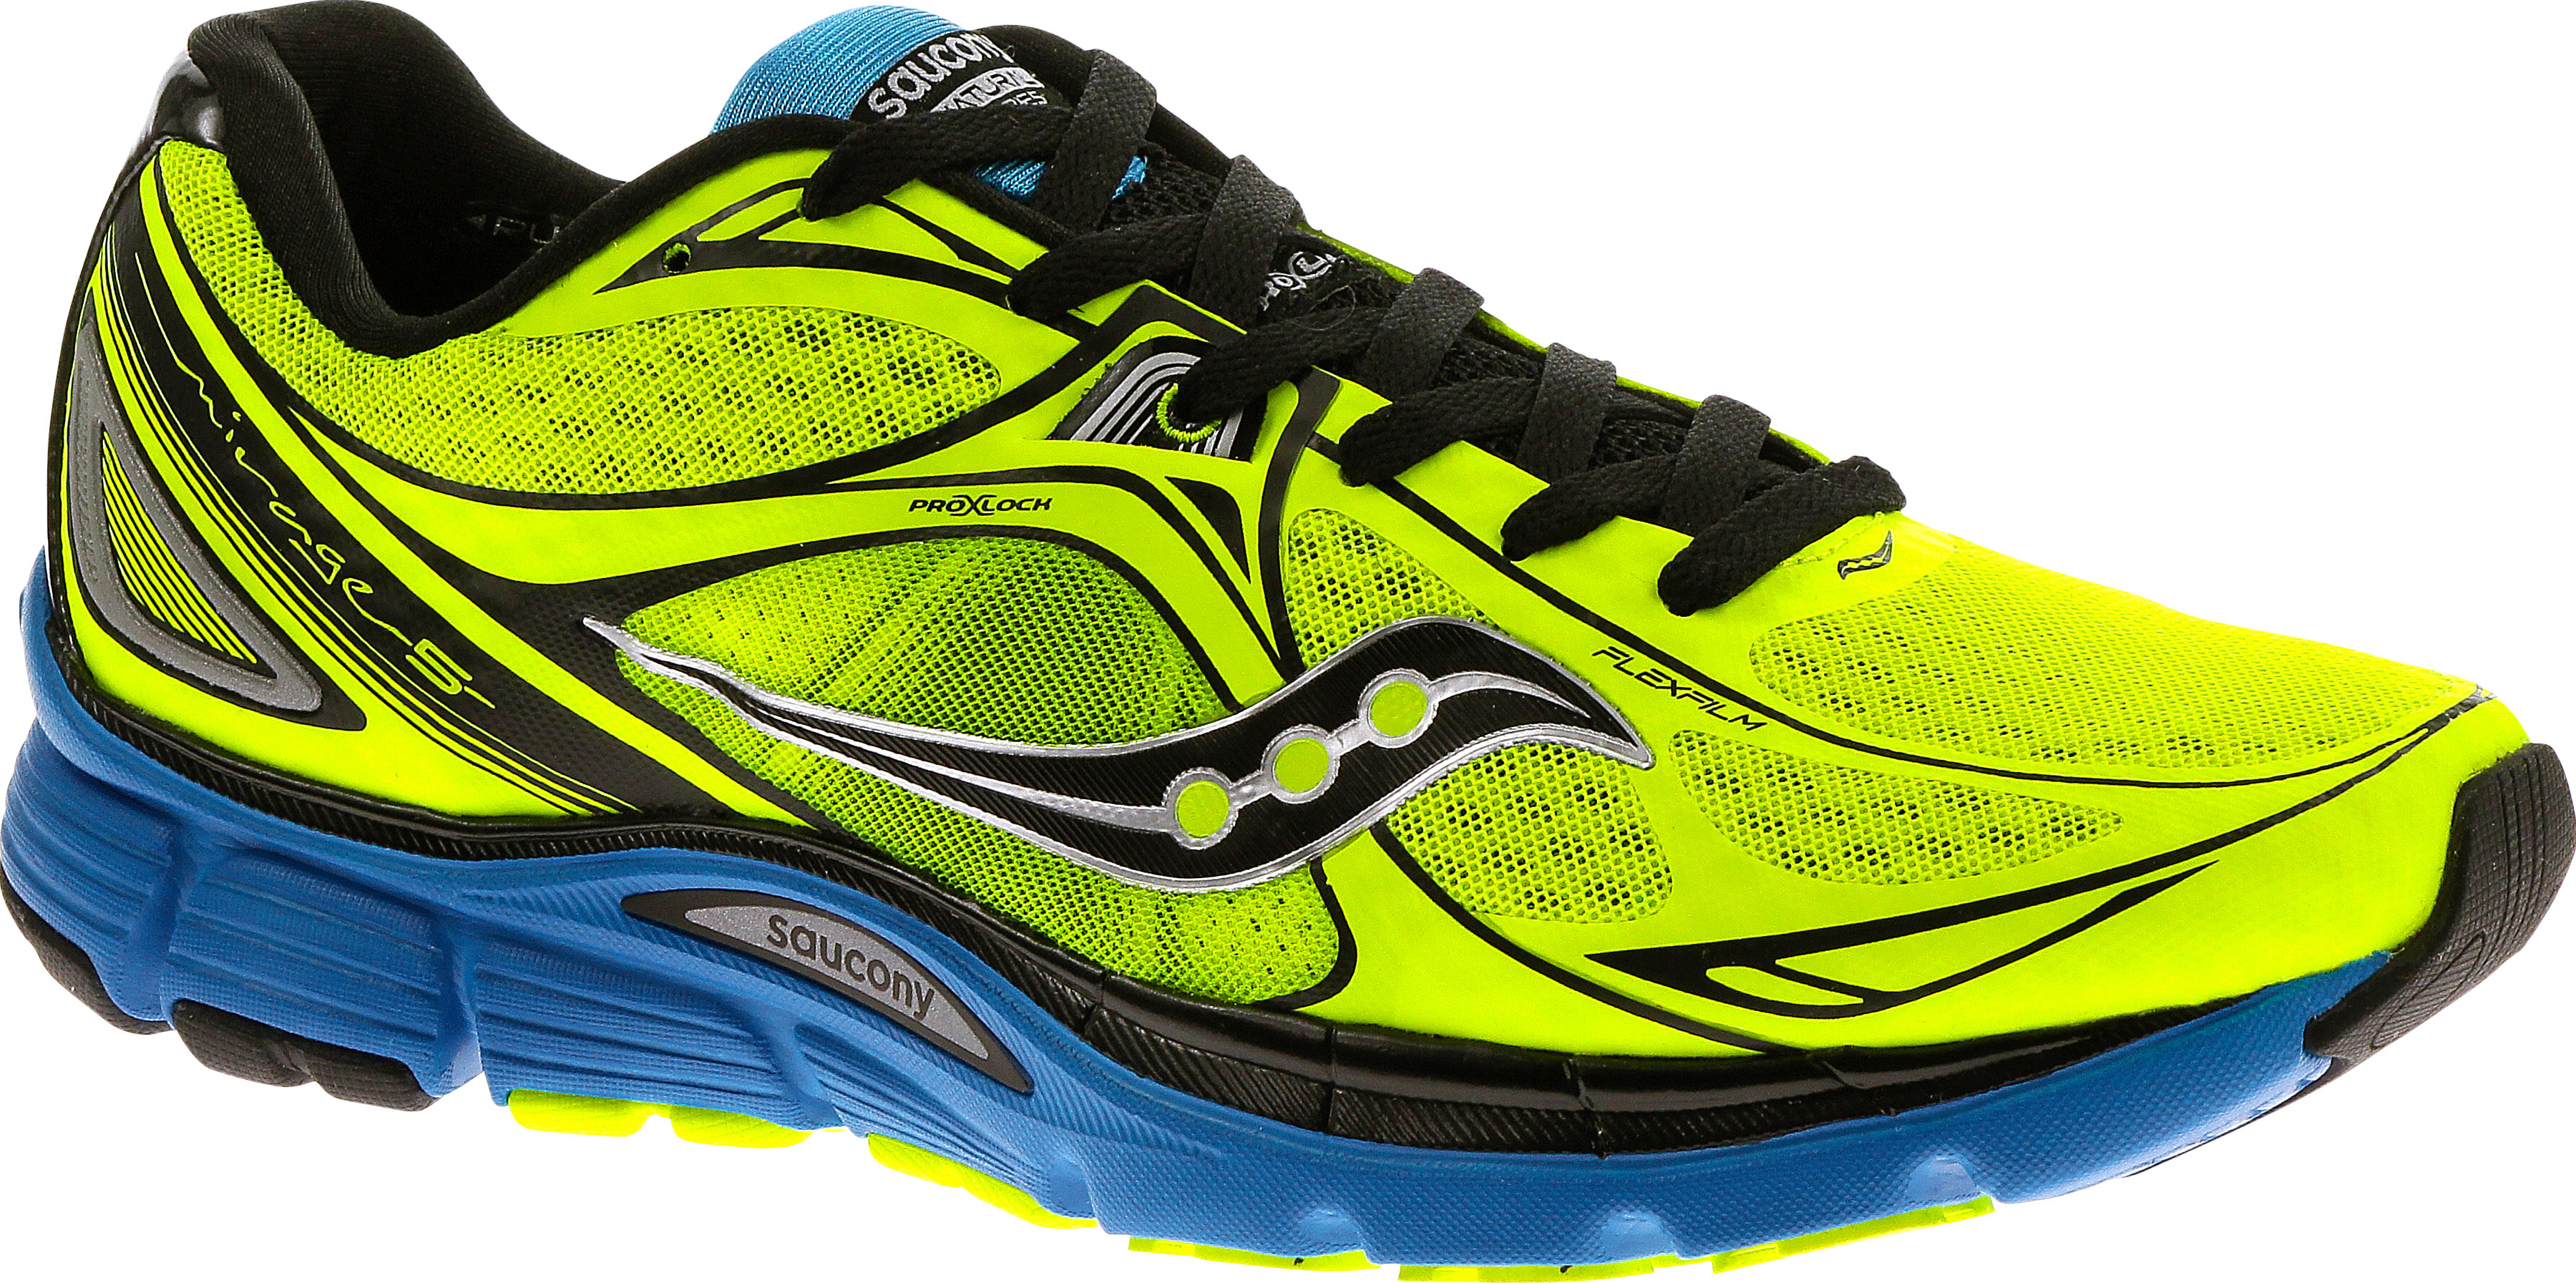 Wiggle Cycle To Work | Saucony Mirage 5 Shoes (AW15